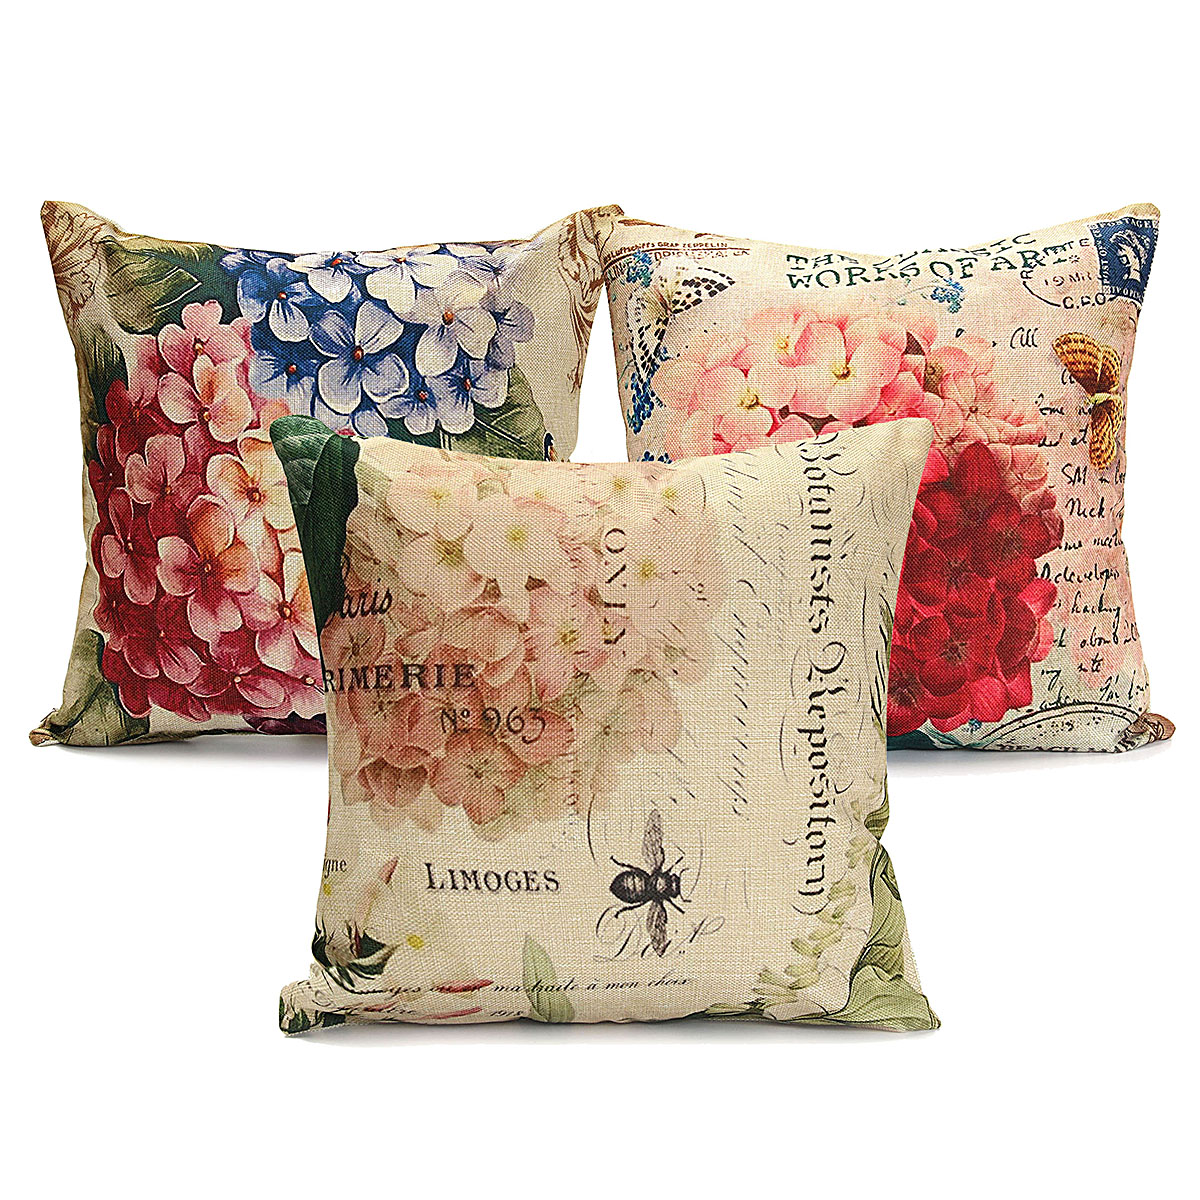 Slip Pillowcase Meigar Vintage Flower Vase Decorative Throw Pillow Case Cushion Cover Clearance 18x18 Inch Square Zipper Waist Pillowcase Pillow Protector Slip Cases